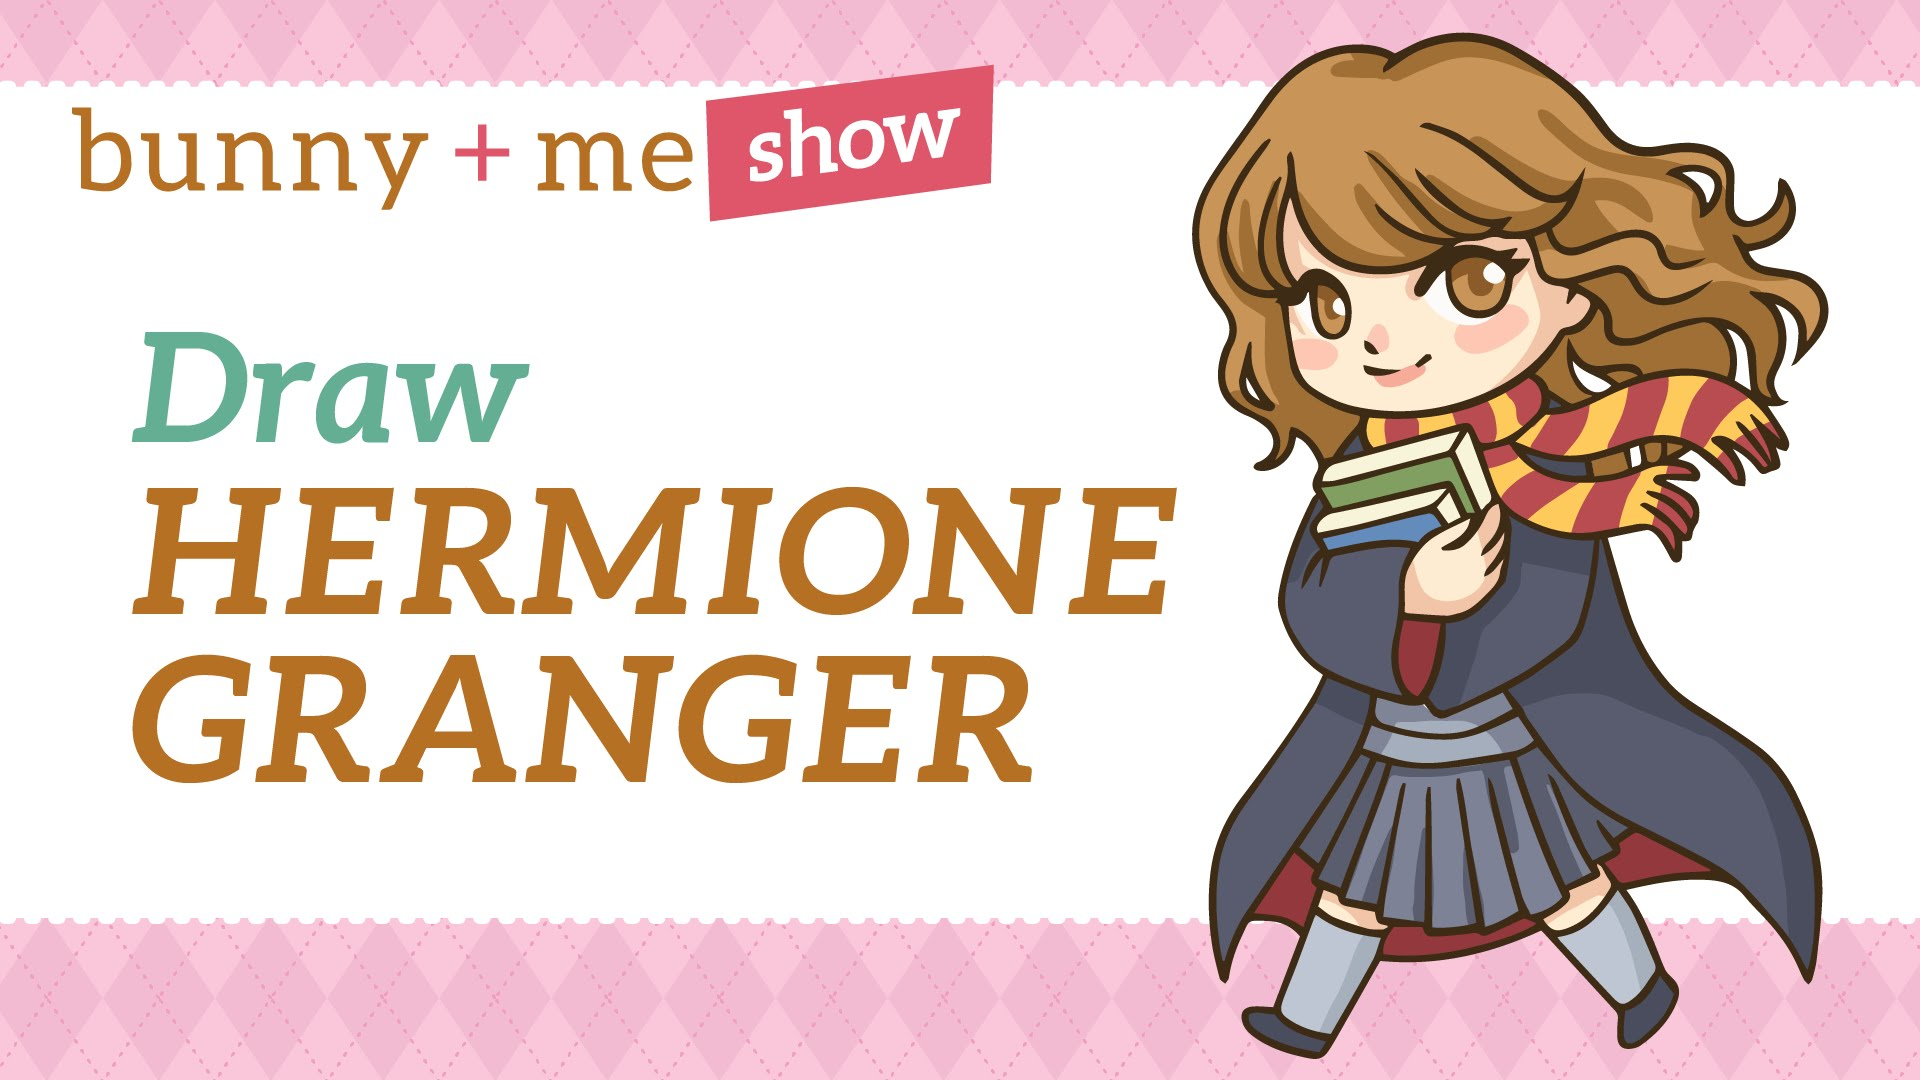 Harry potter clipart fun 2 draw. How to hermione drawing